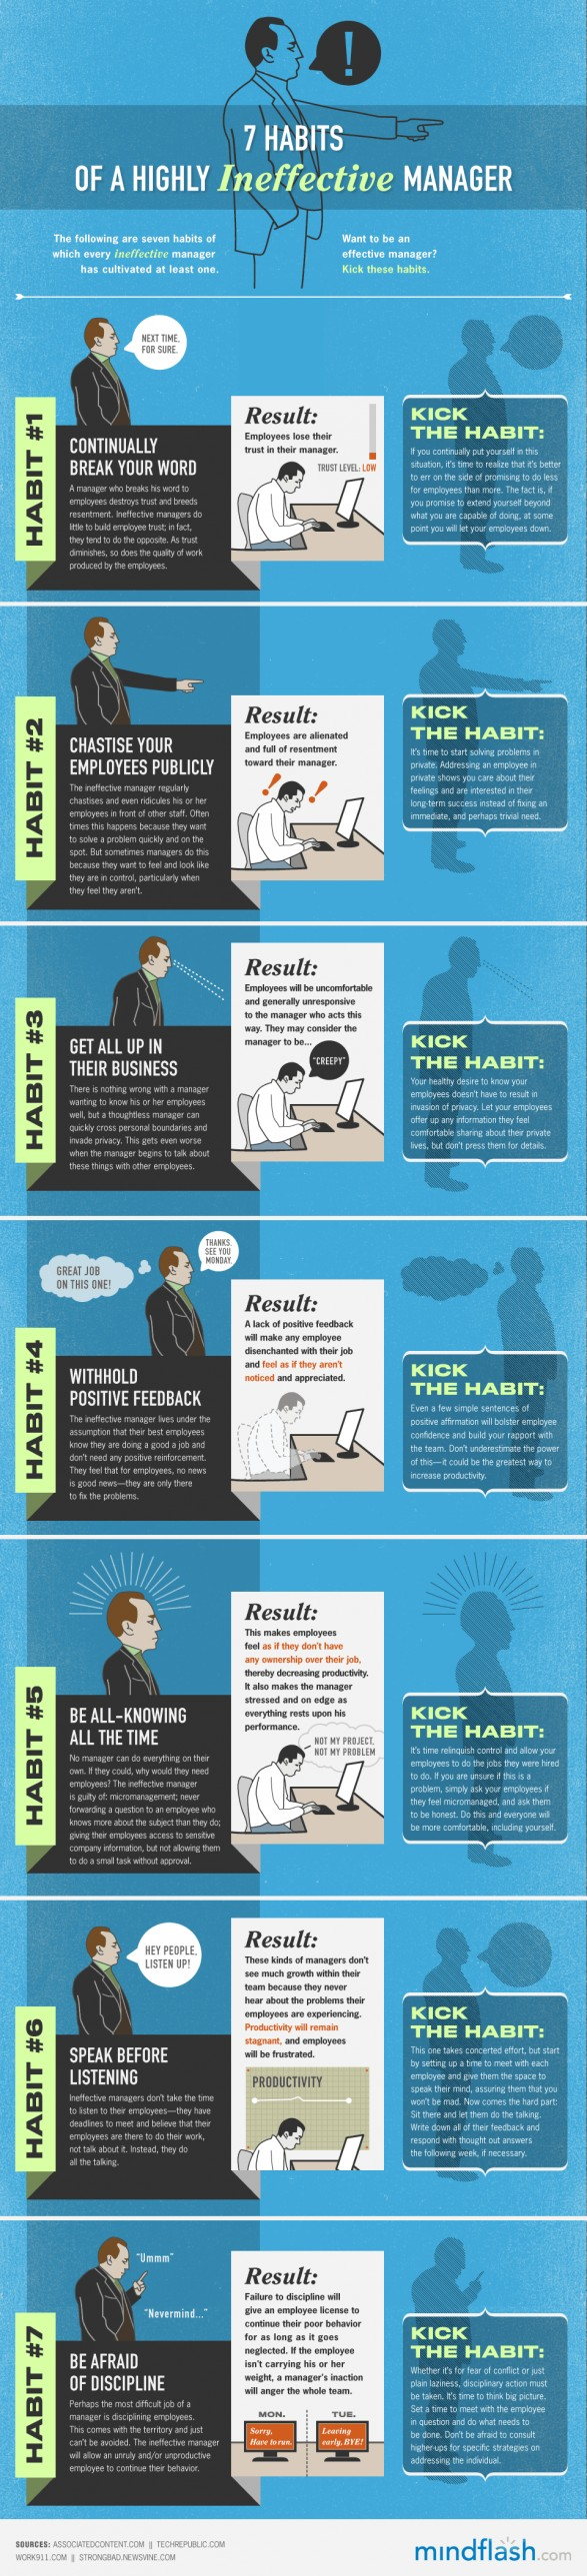 7-habits-of-a-highly-ineffective-manager